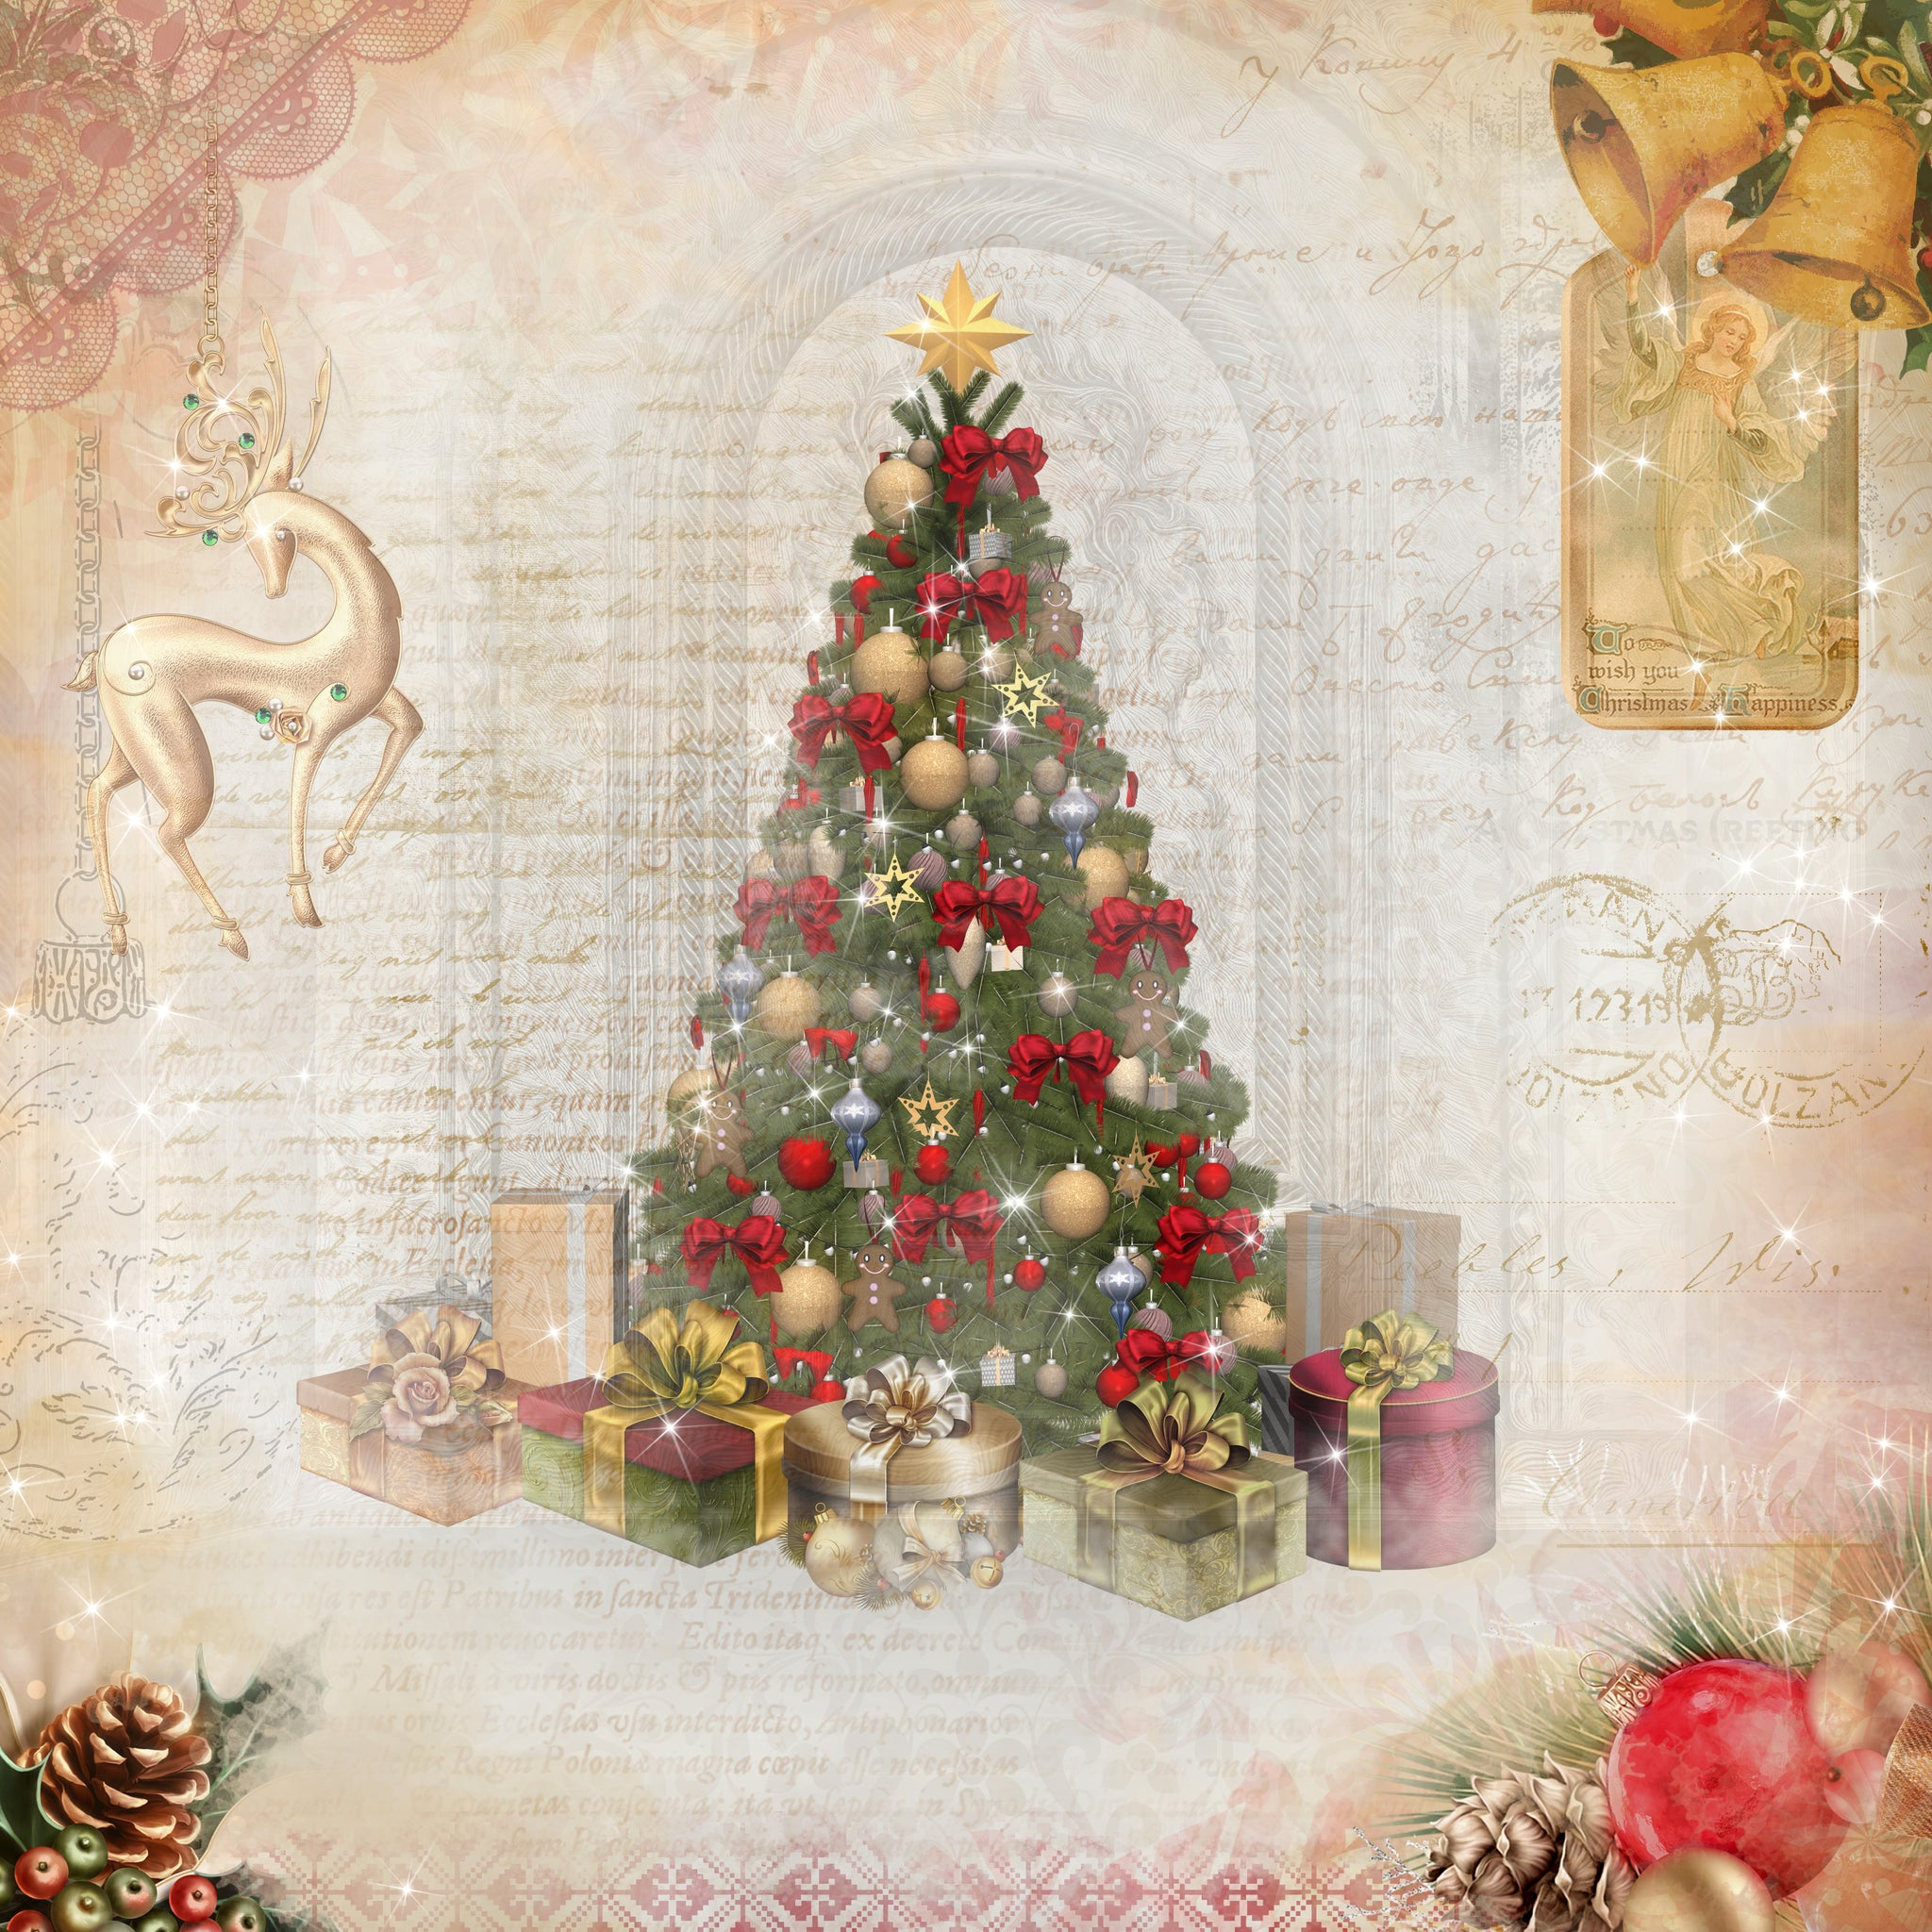 limited edition christmas tale 12x12 paper collection - Christmas Tale